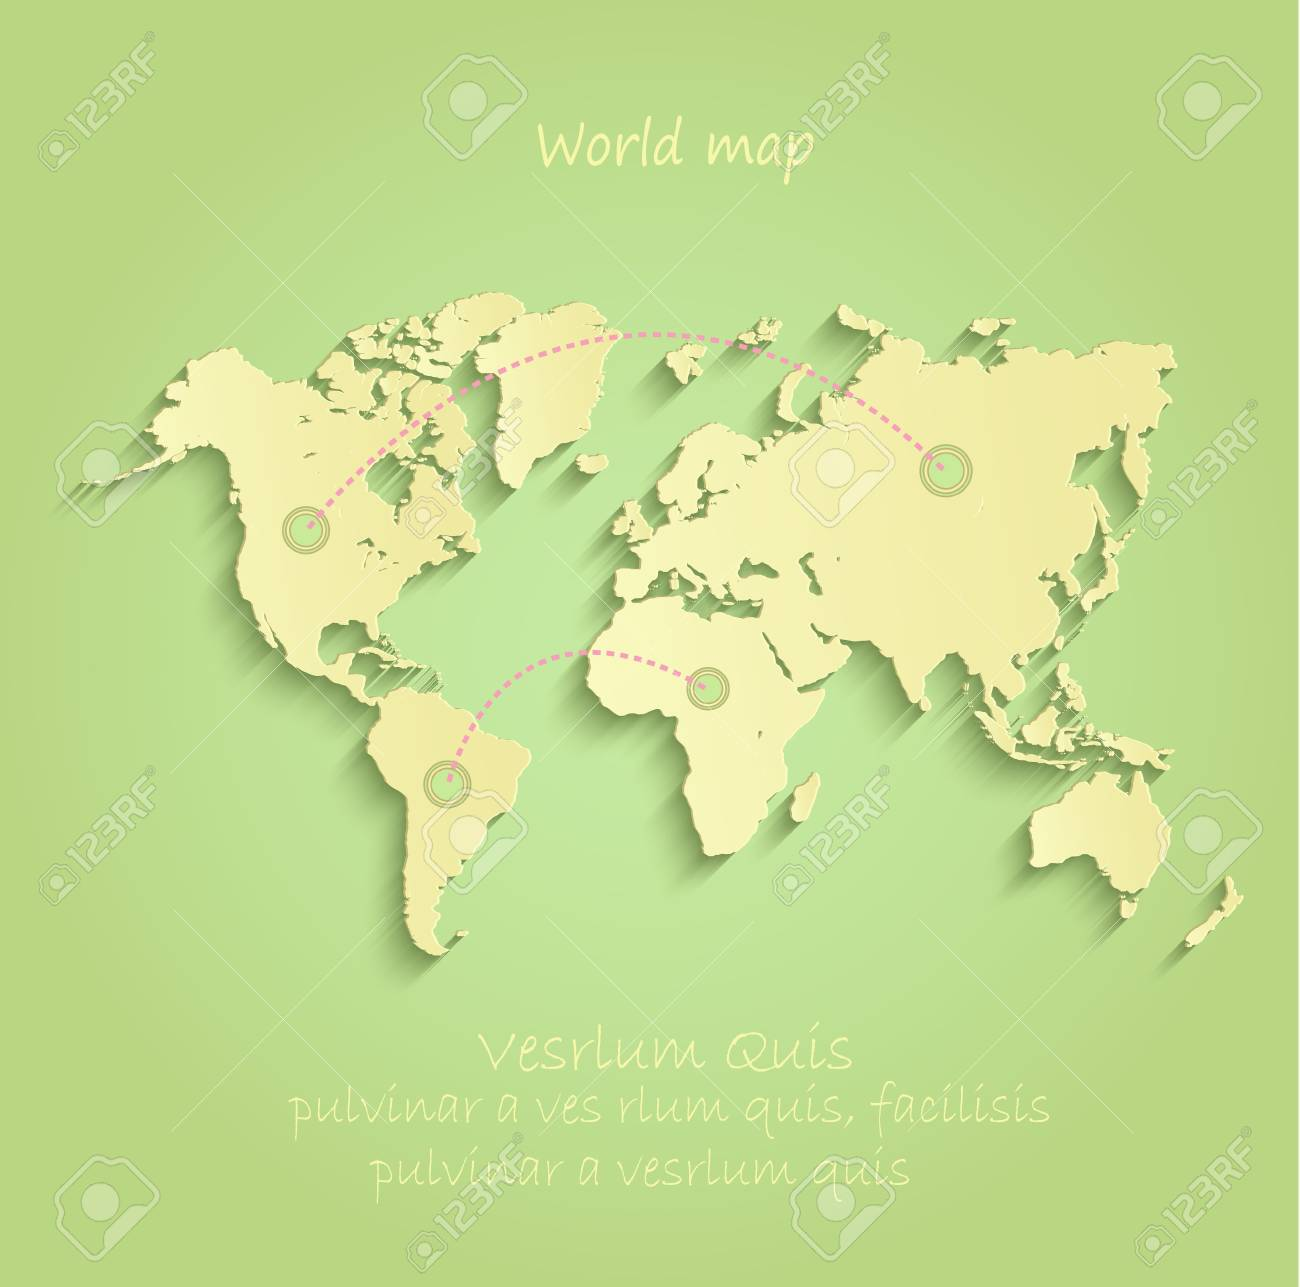 World map green yellow vector infographic royalty free cliparts vector world map green yellow vector infographic gumiabroncs Images